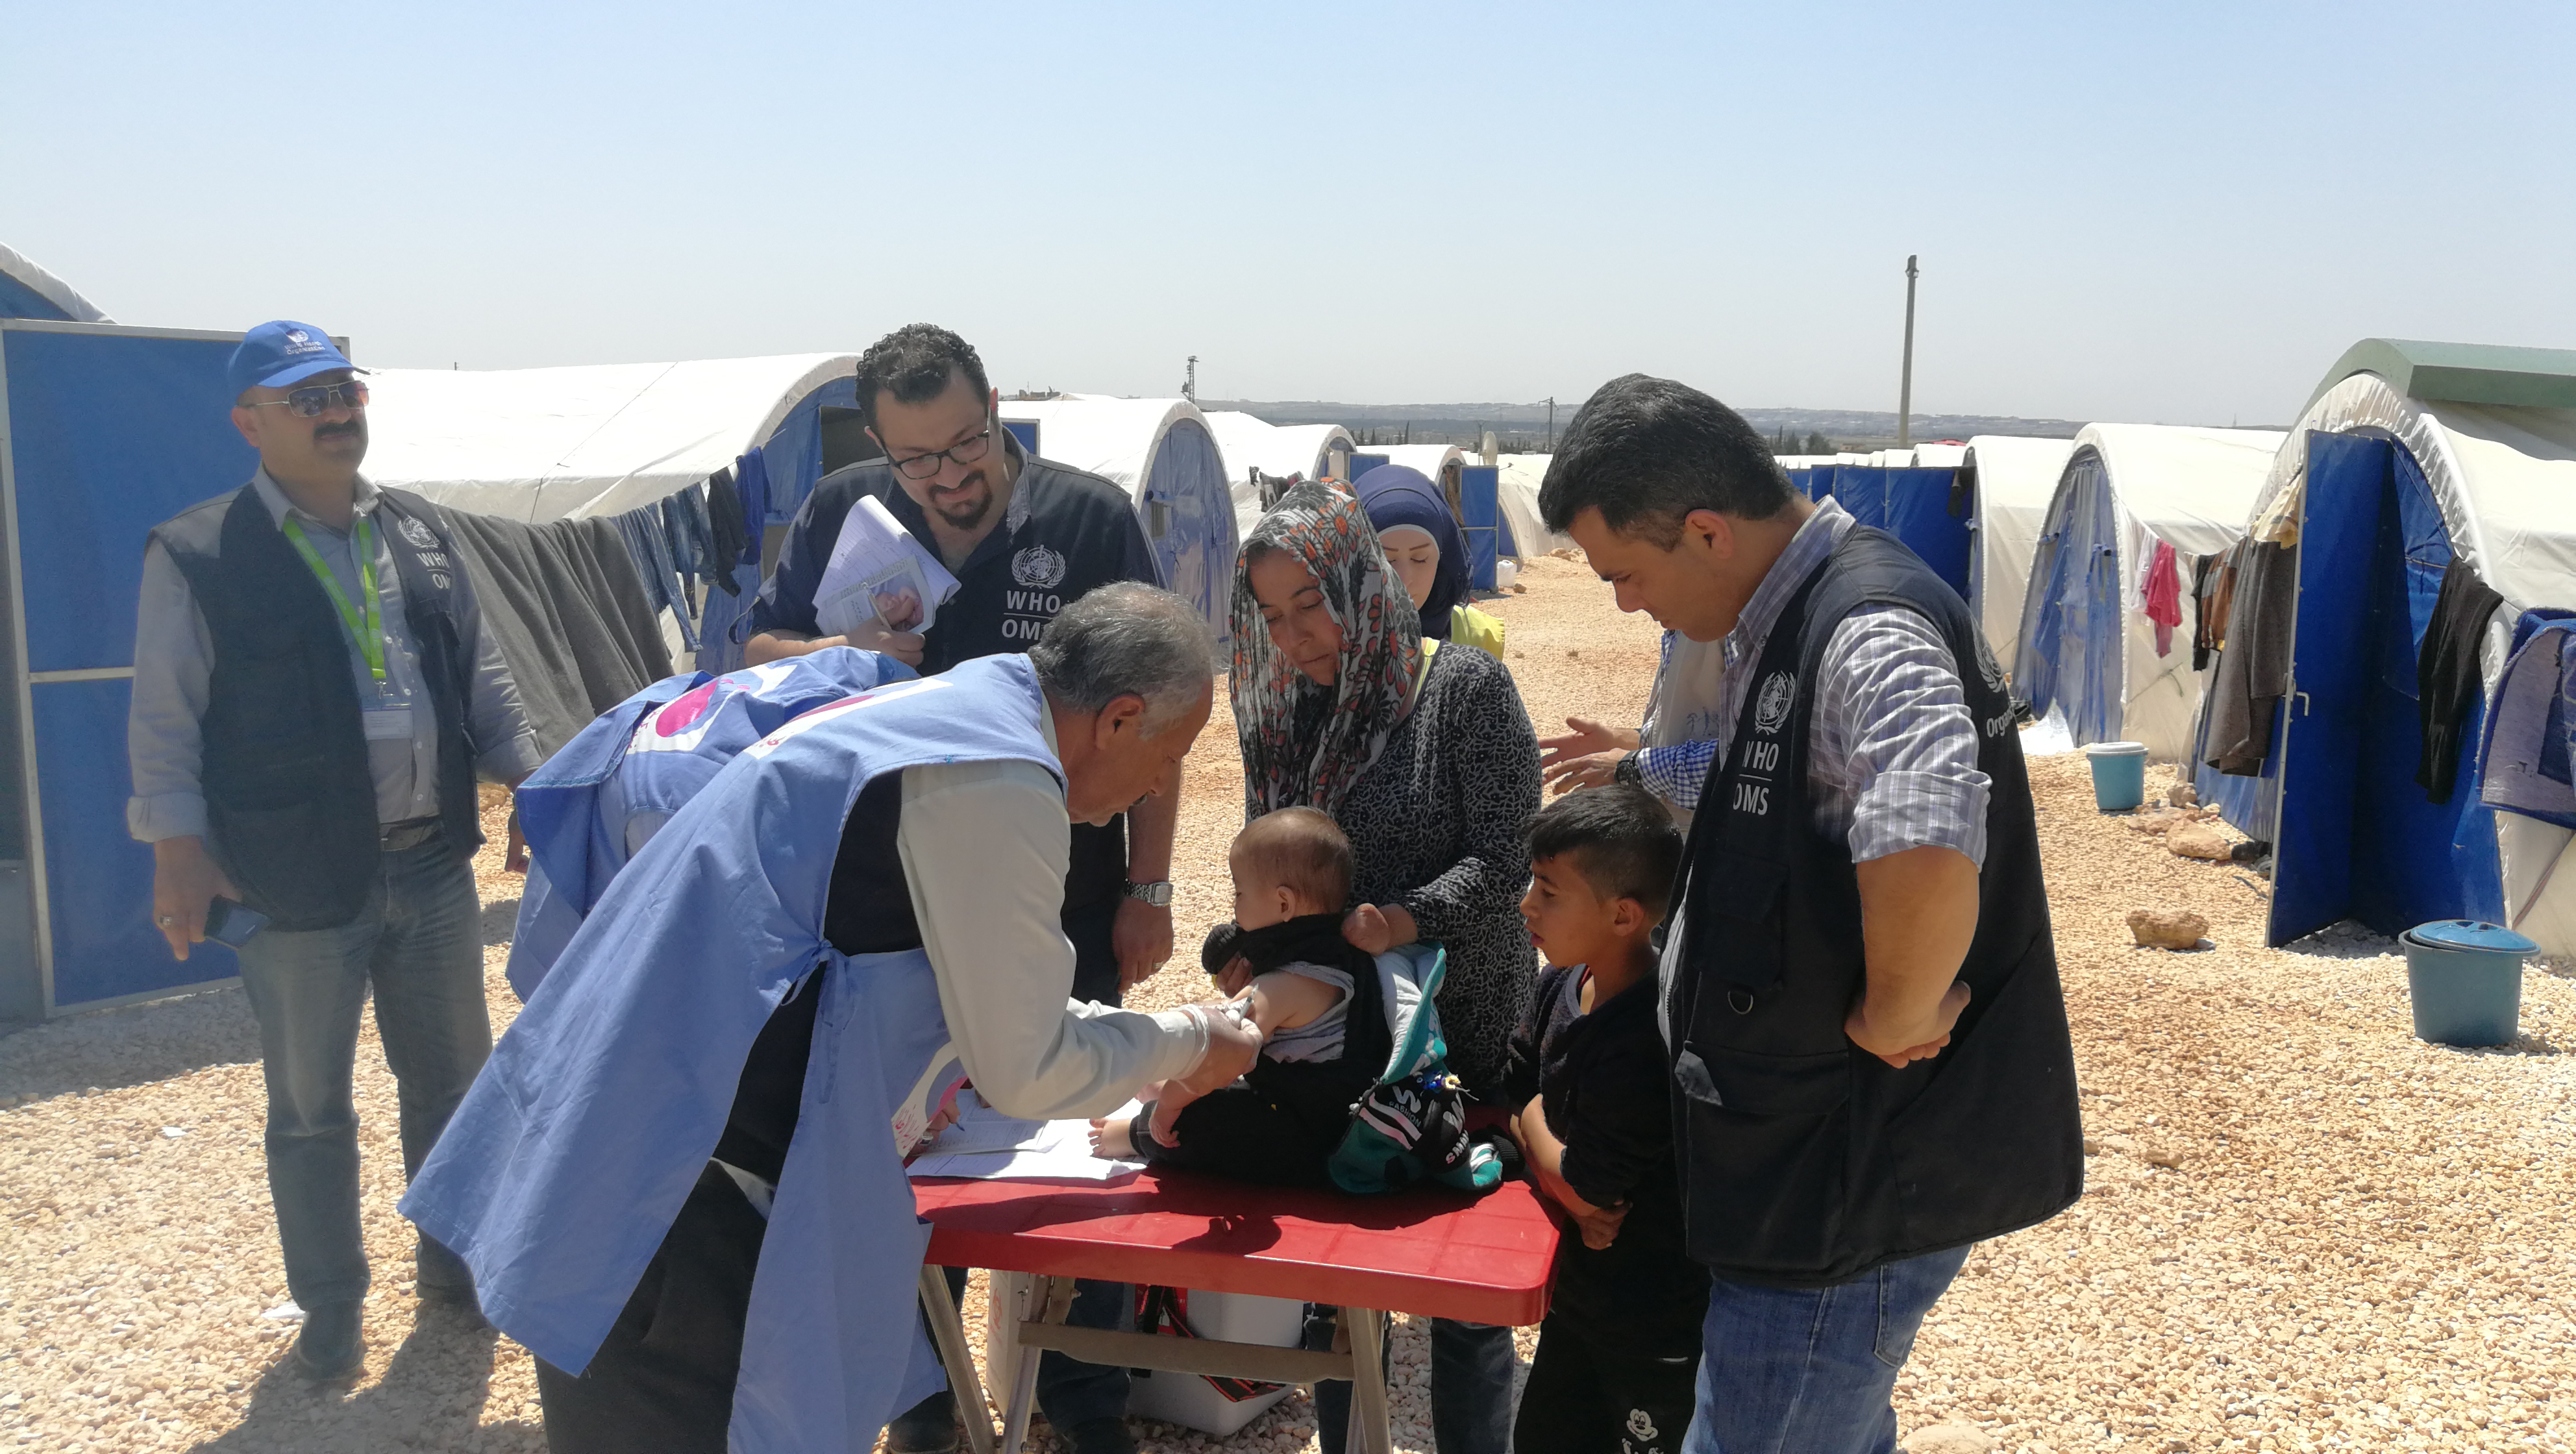 WHO-supported_vaccination_team_is_providing_immunization_services_to_children_in_Fafin_IDP_camp_in_rural_Aleppo._PhotoWHO.Syria_2019